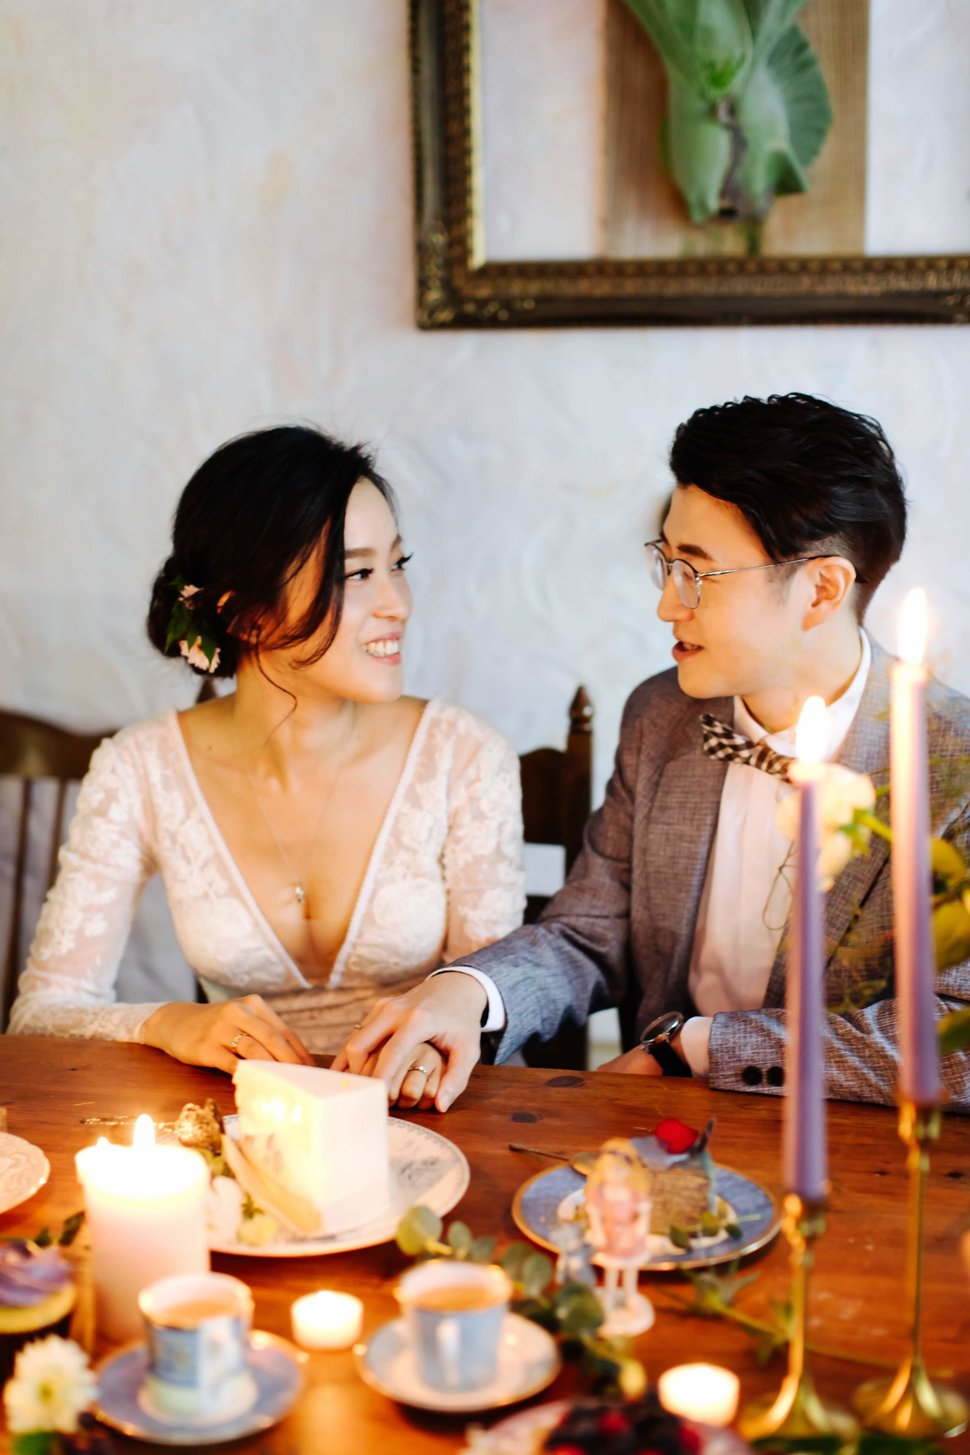 美式婚紗-自助婚紗-Amazing Grace攝影-台中婚紗- Amazing Grace Studio34 - Amazing Grace Studio《結婚吧》